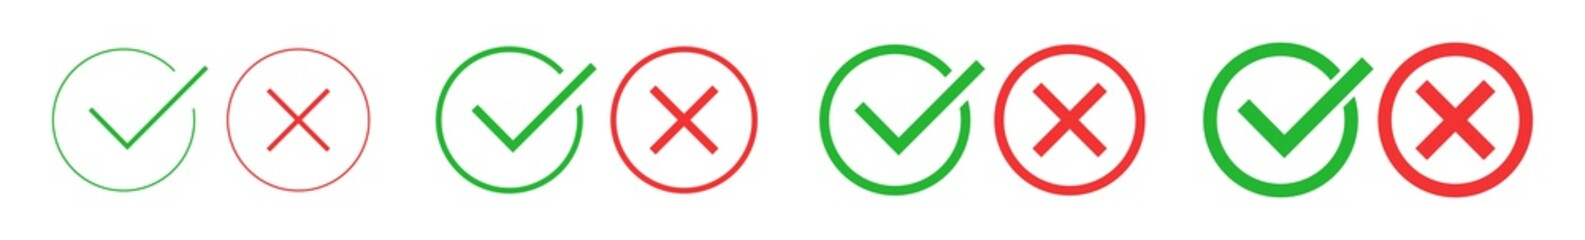 Check Mark Cross Circle Icon Green Red   Checkmark Checklist Illustration   Tick X Symbol   Voting Logo   Positive Negative Sign   Isolated   Variations Fototapete